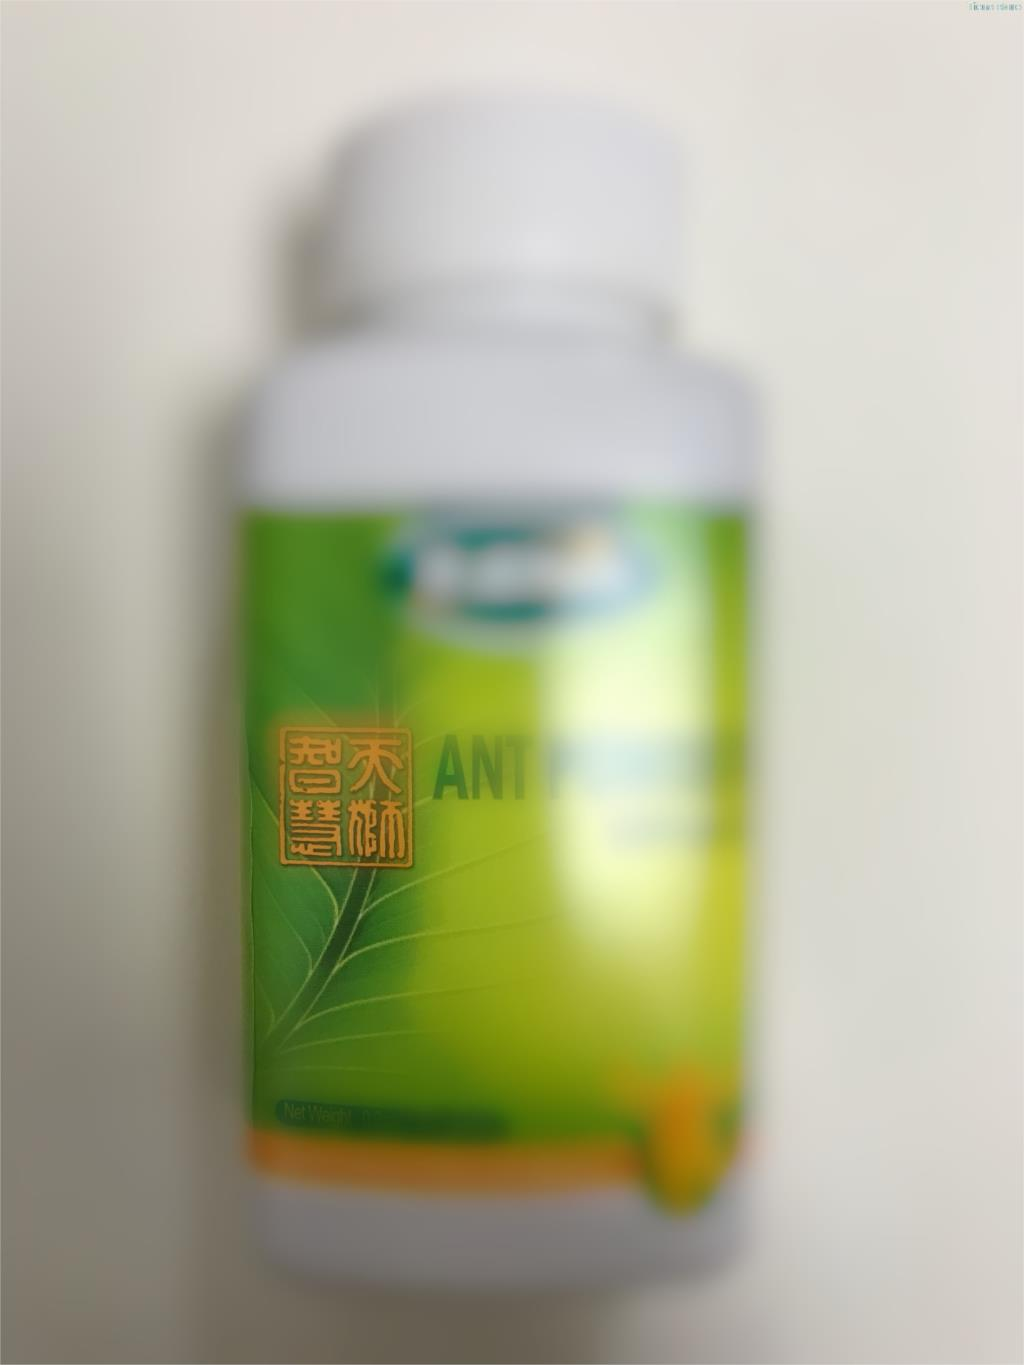 Free Shipping 5 Bottles of Tien 100 Pure Ant Supply Produced in 2019